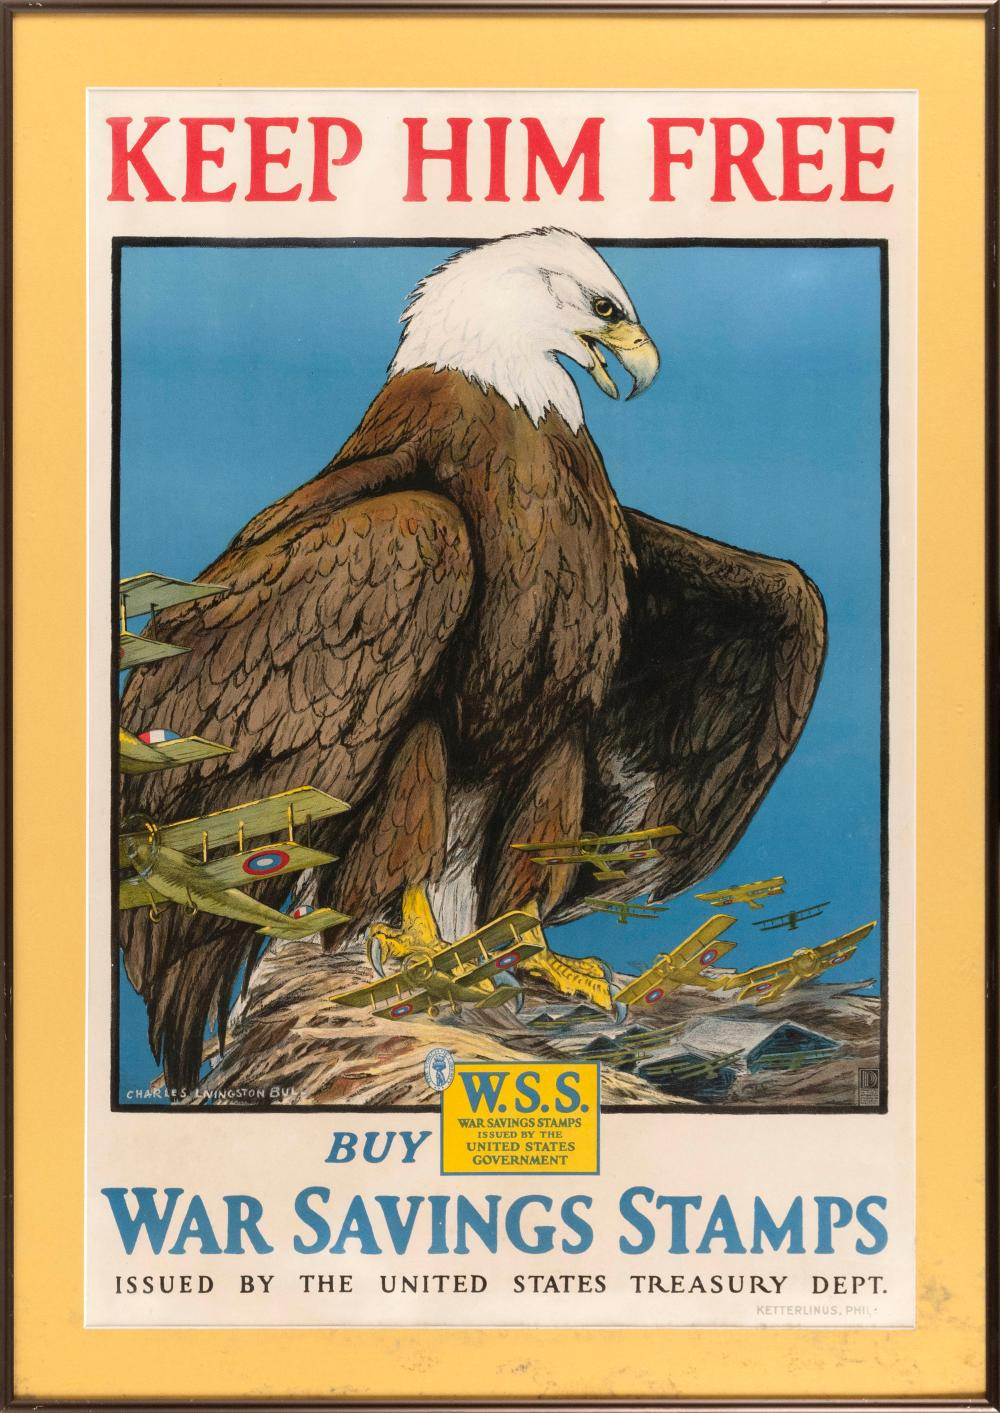 """""""KEEP HIM FREE BUY WAR SAVINGS STAMPS ISSUED BY THE UNITED STATES TREASURY DEPT."""" By Charles Livingston Bull, published by Ketterlin..."""